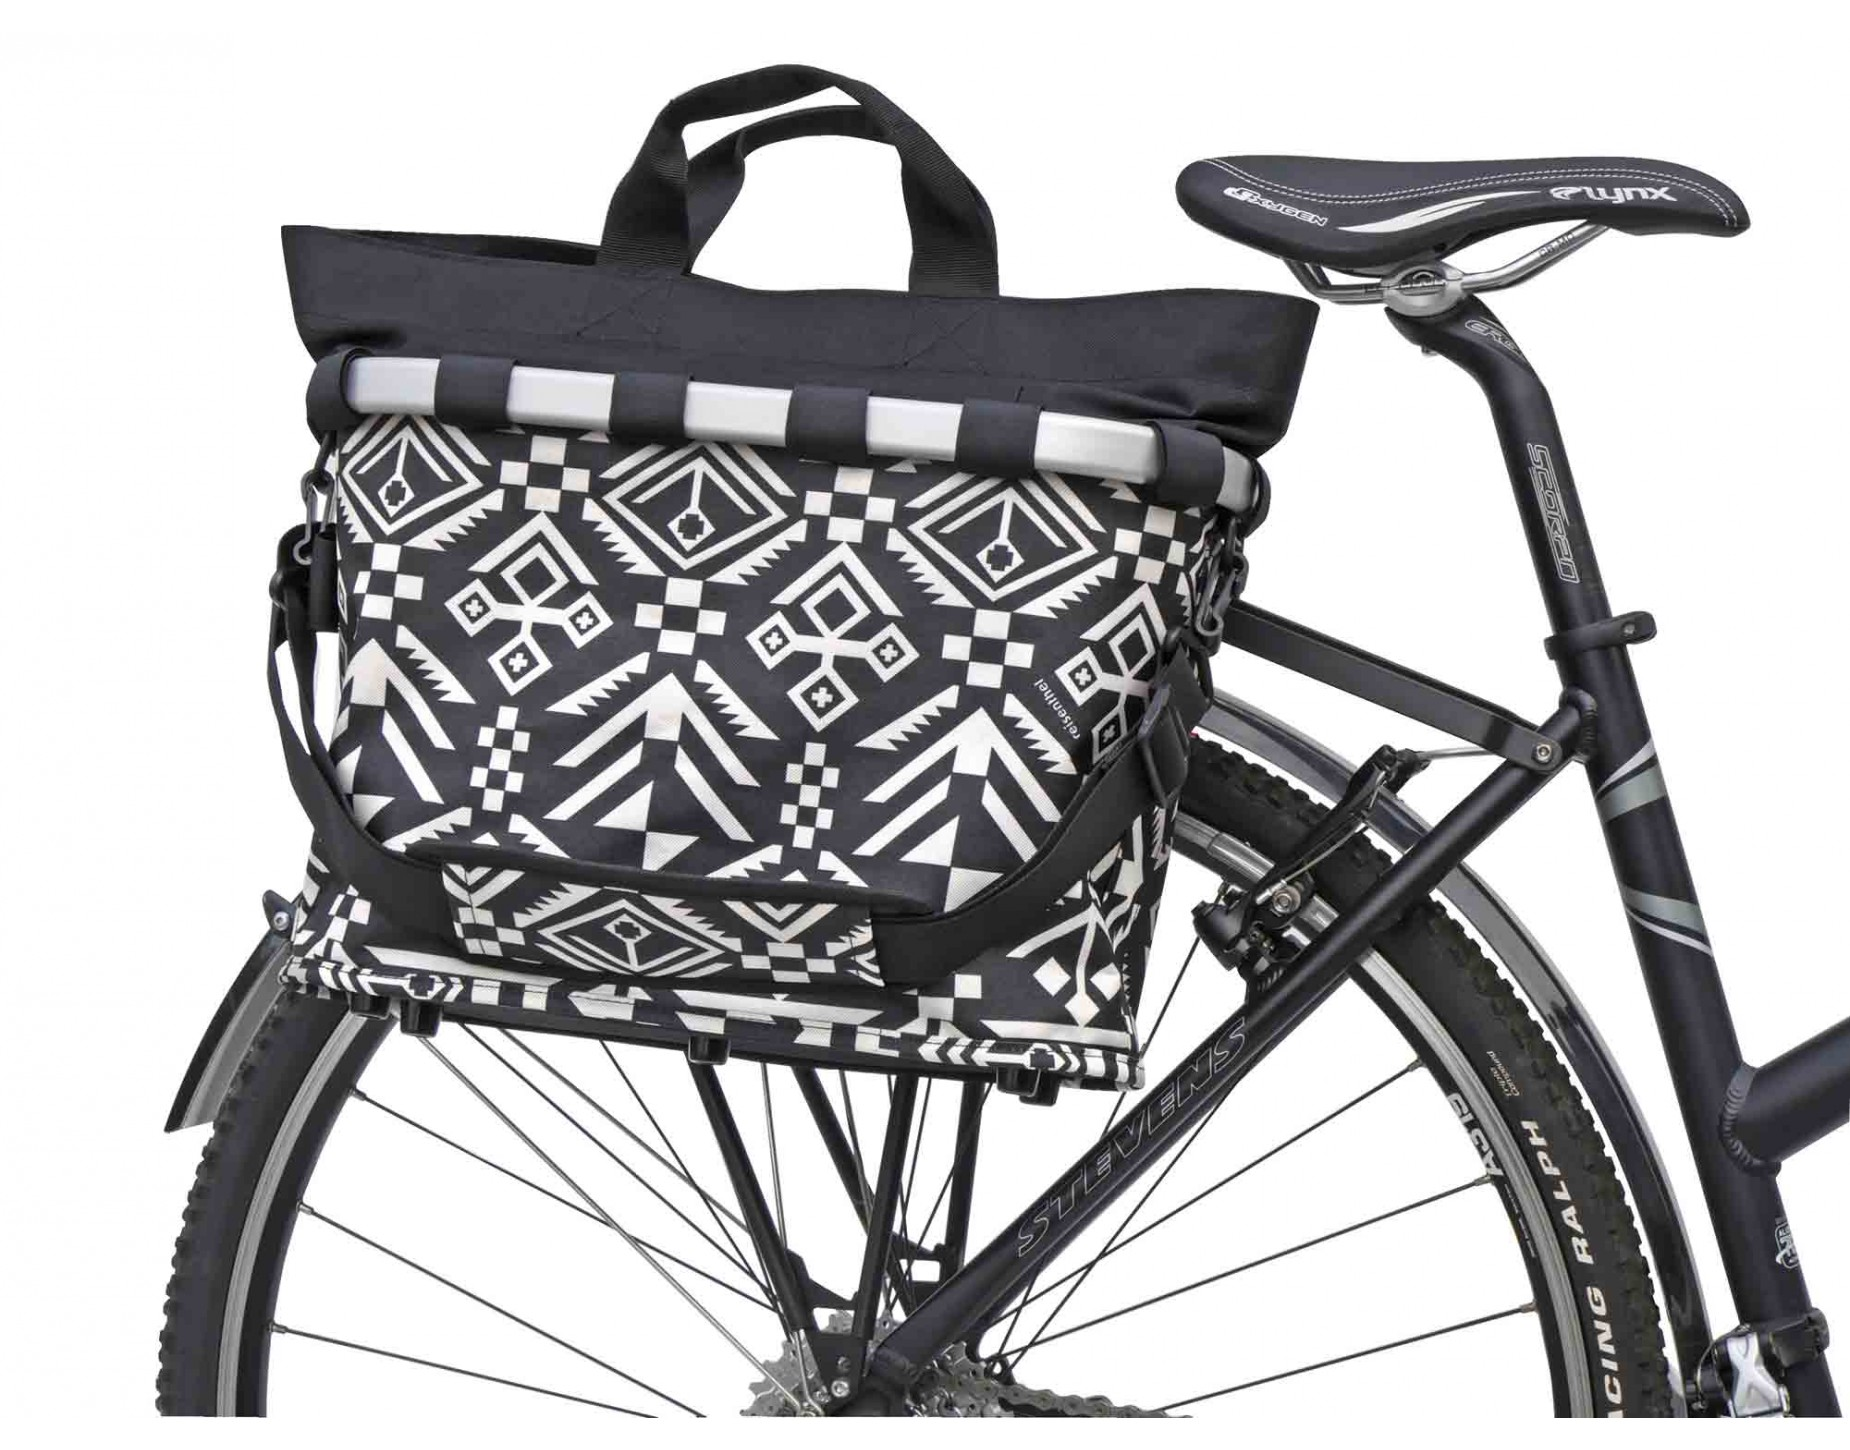 reisenthel bikebasket oval m single pannier bag everything you need rose bikes. Black Bedroom Furniture Sets. Home Design Ideas